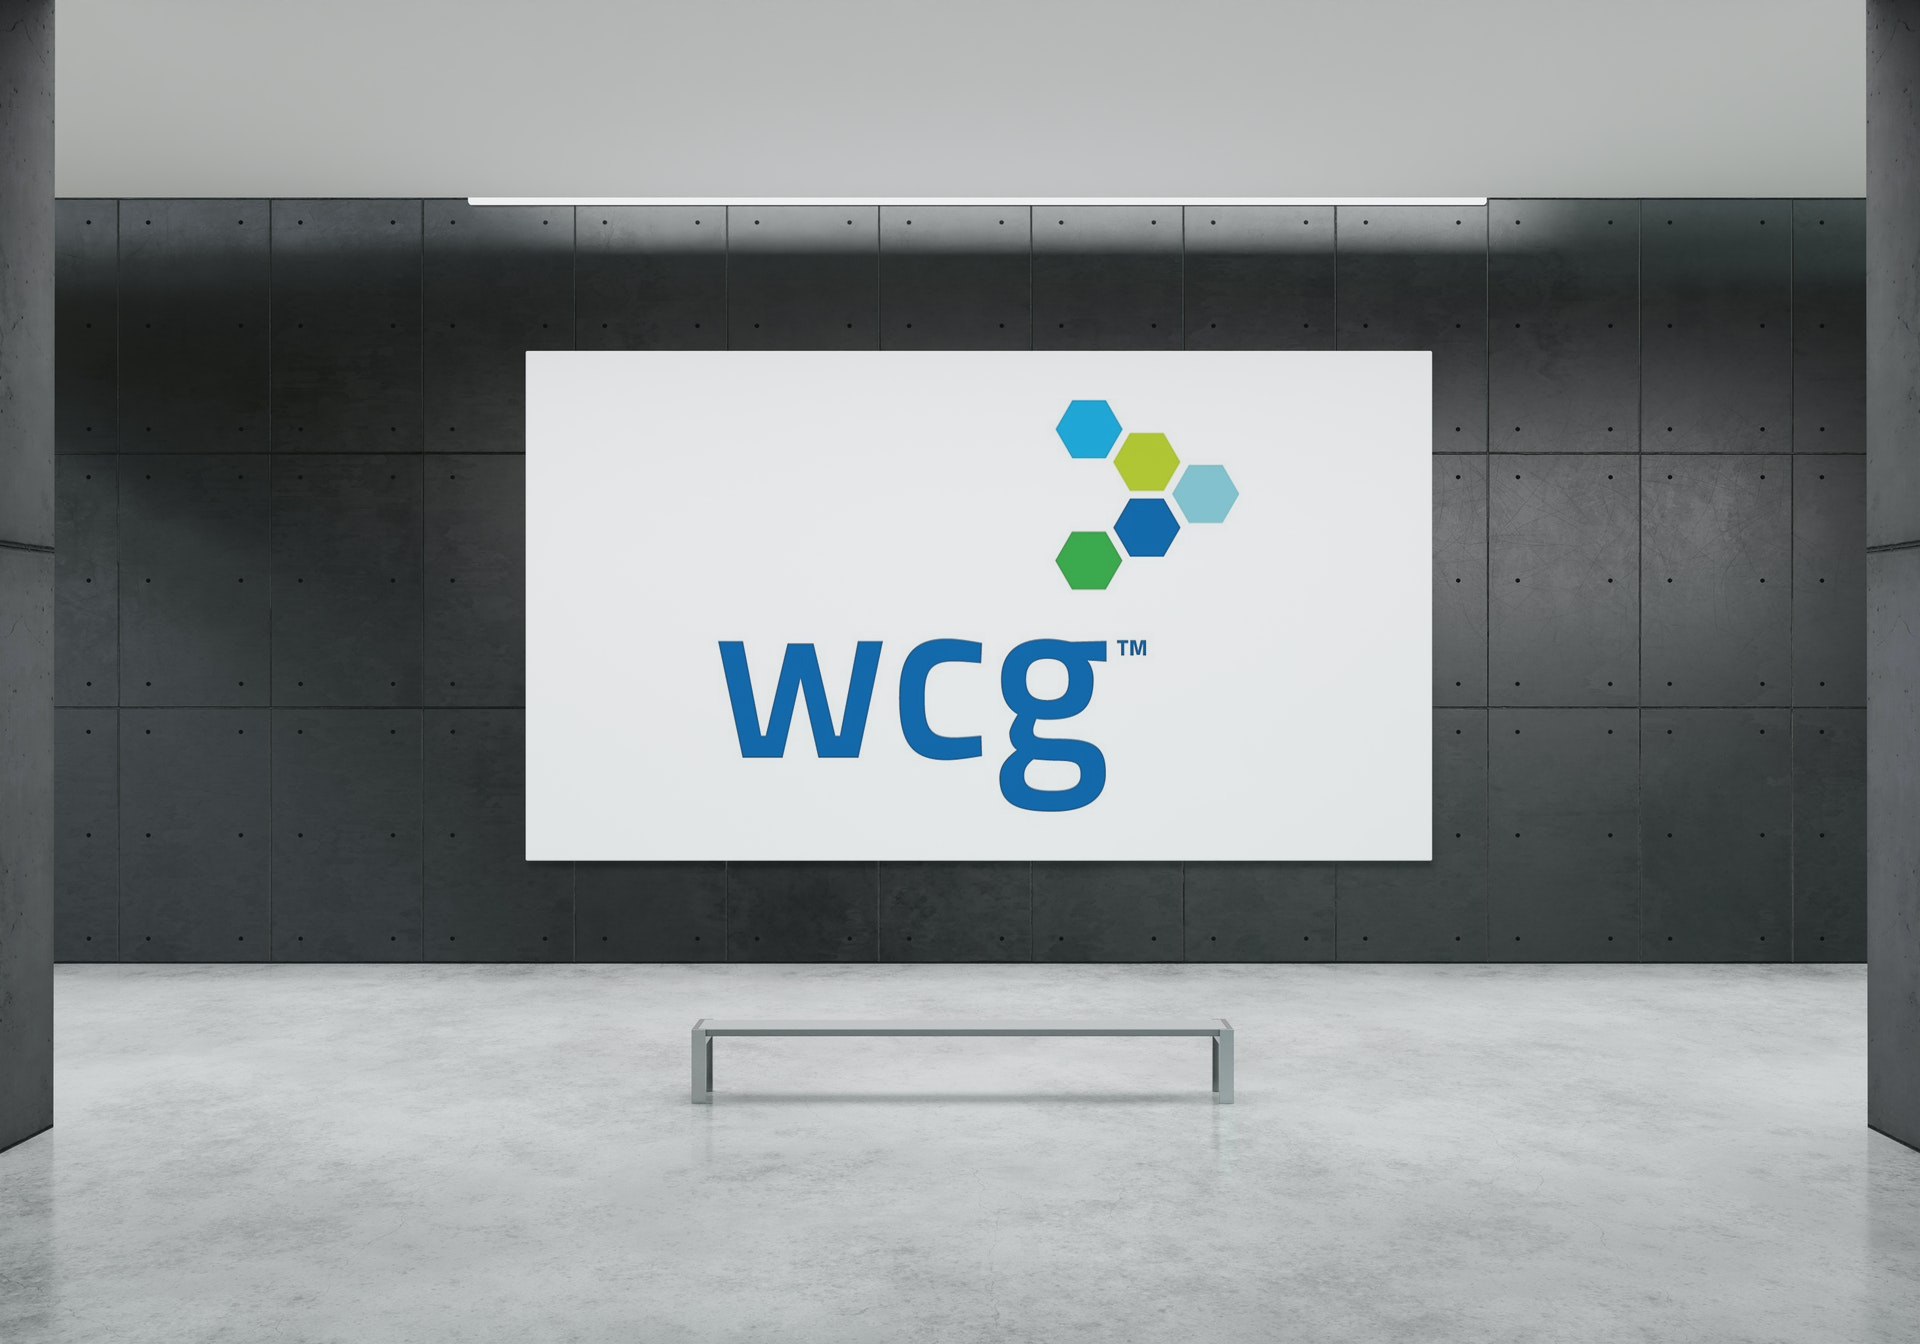 WCG Clinical Initial Public Offering